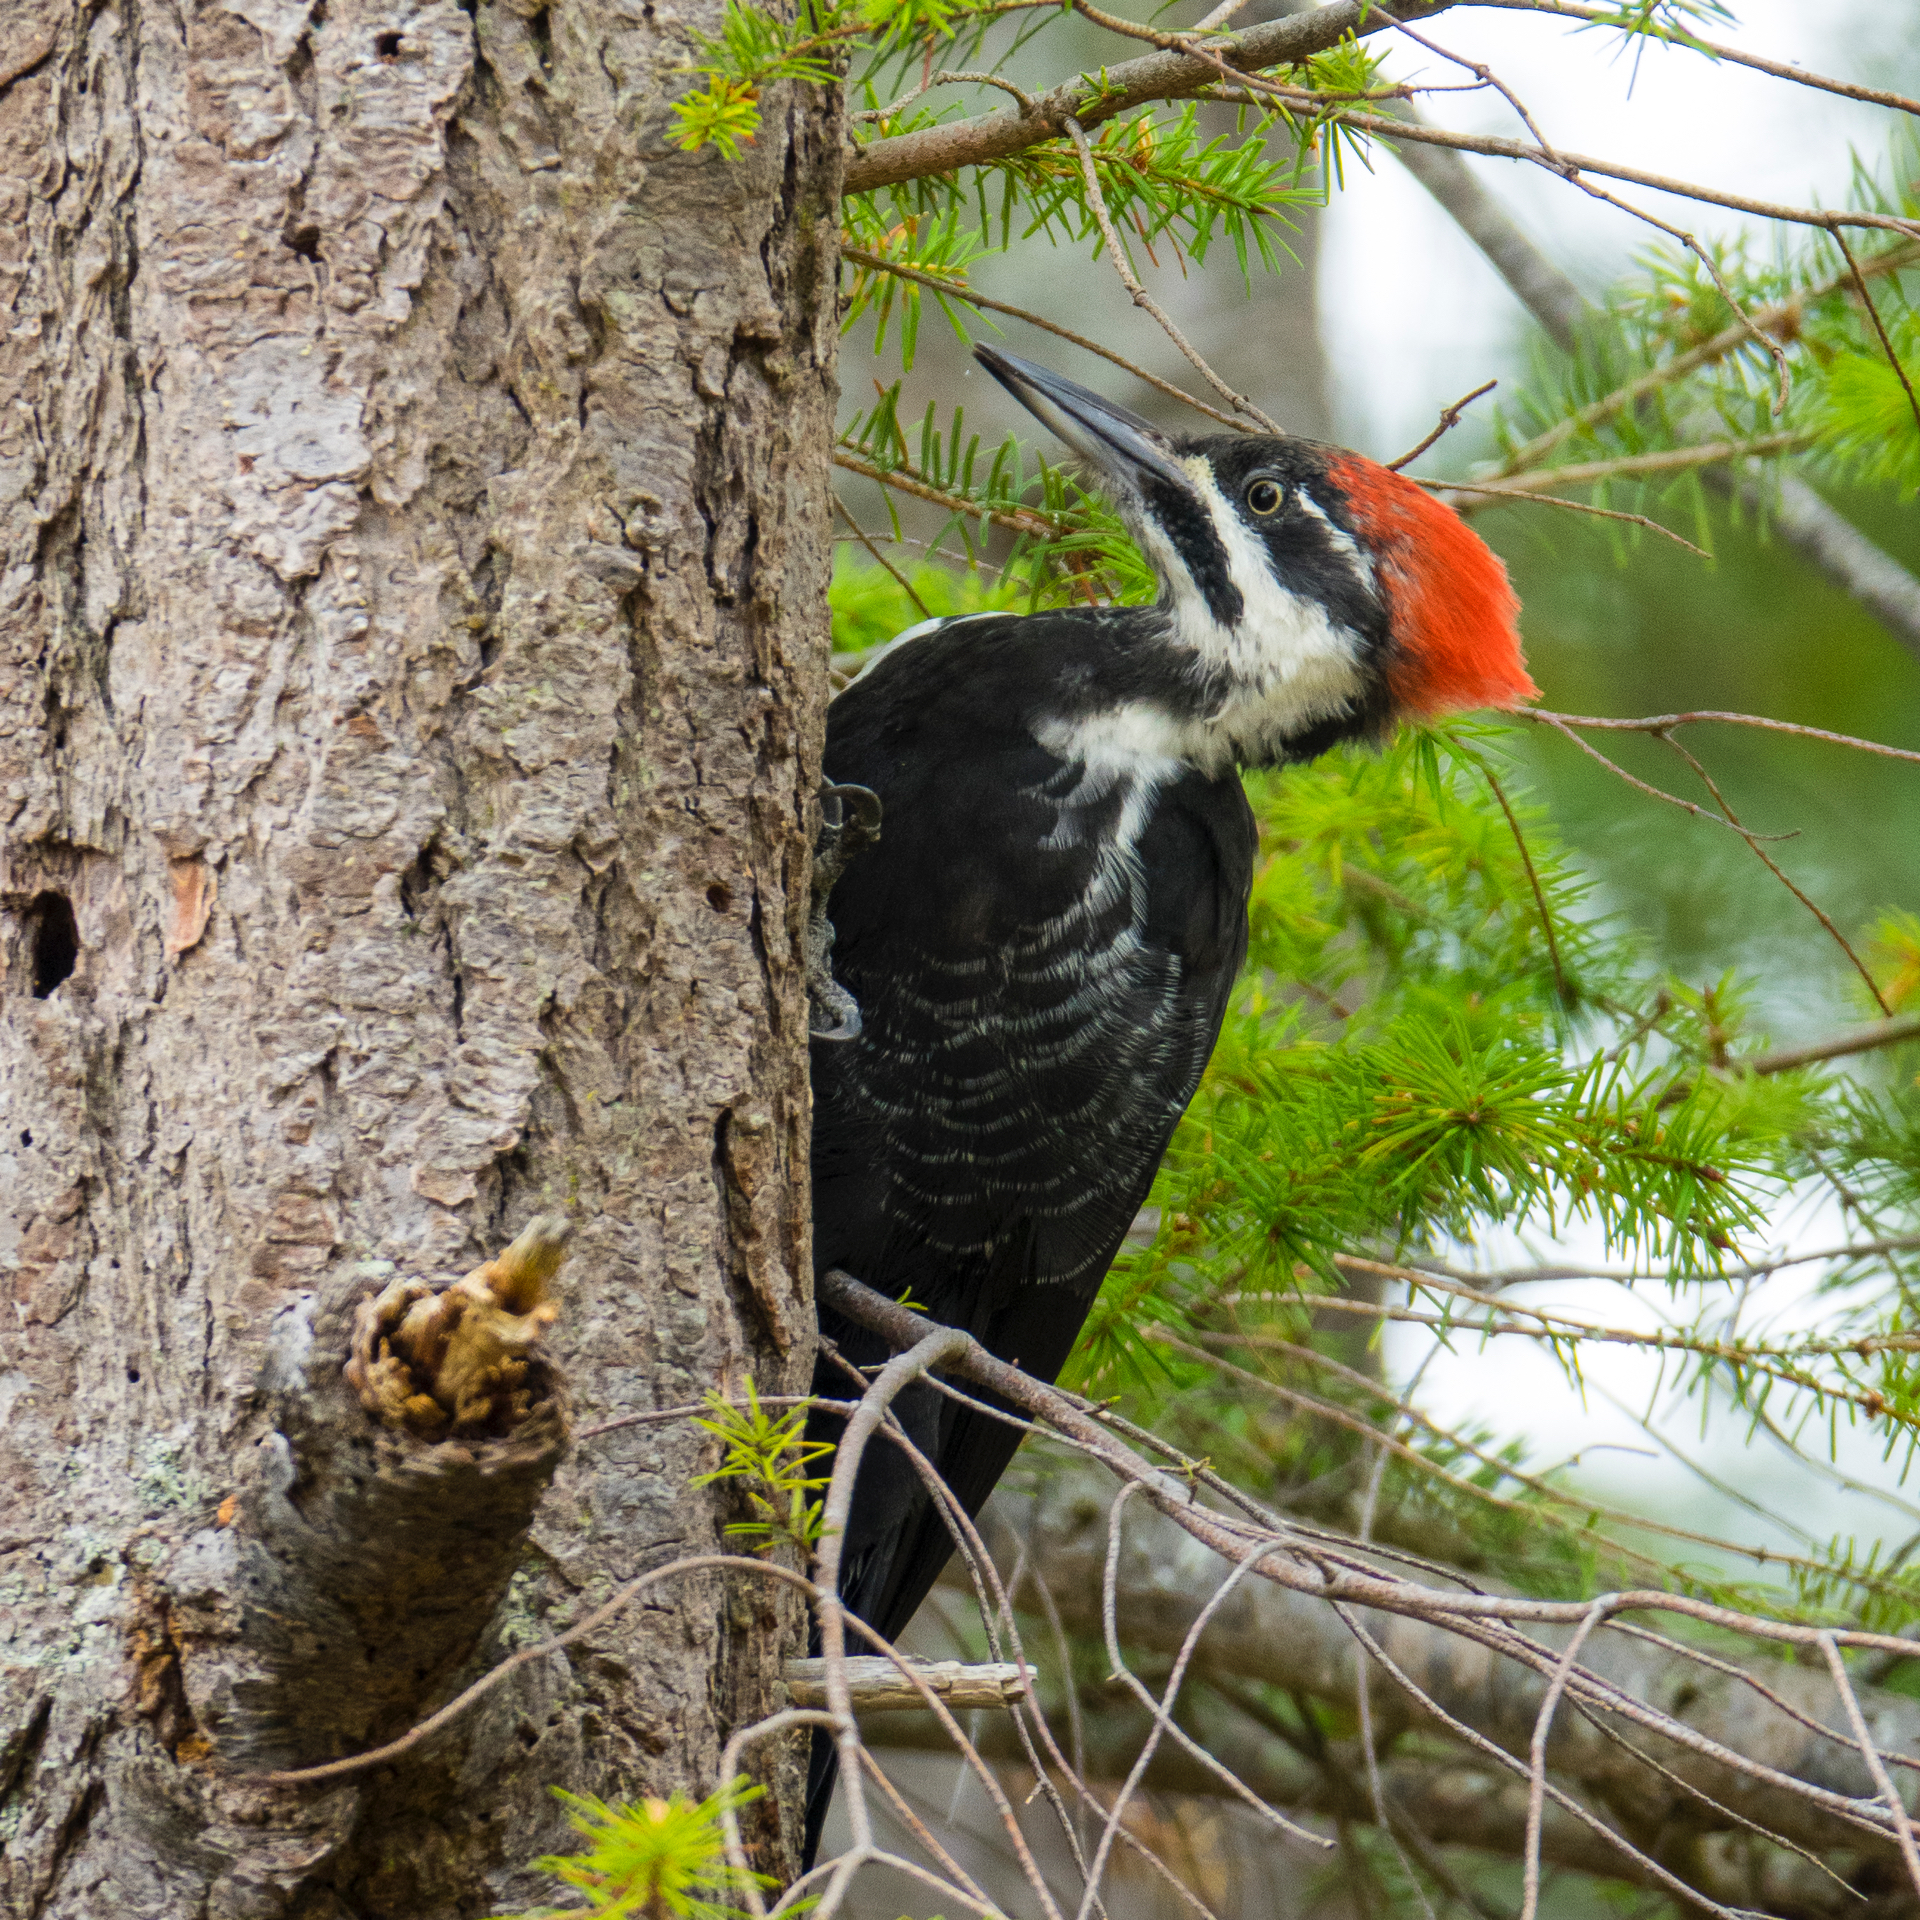 A female Pileated Woodpecker that was putting on a show at Bellhouse Park.